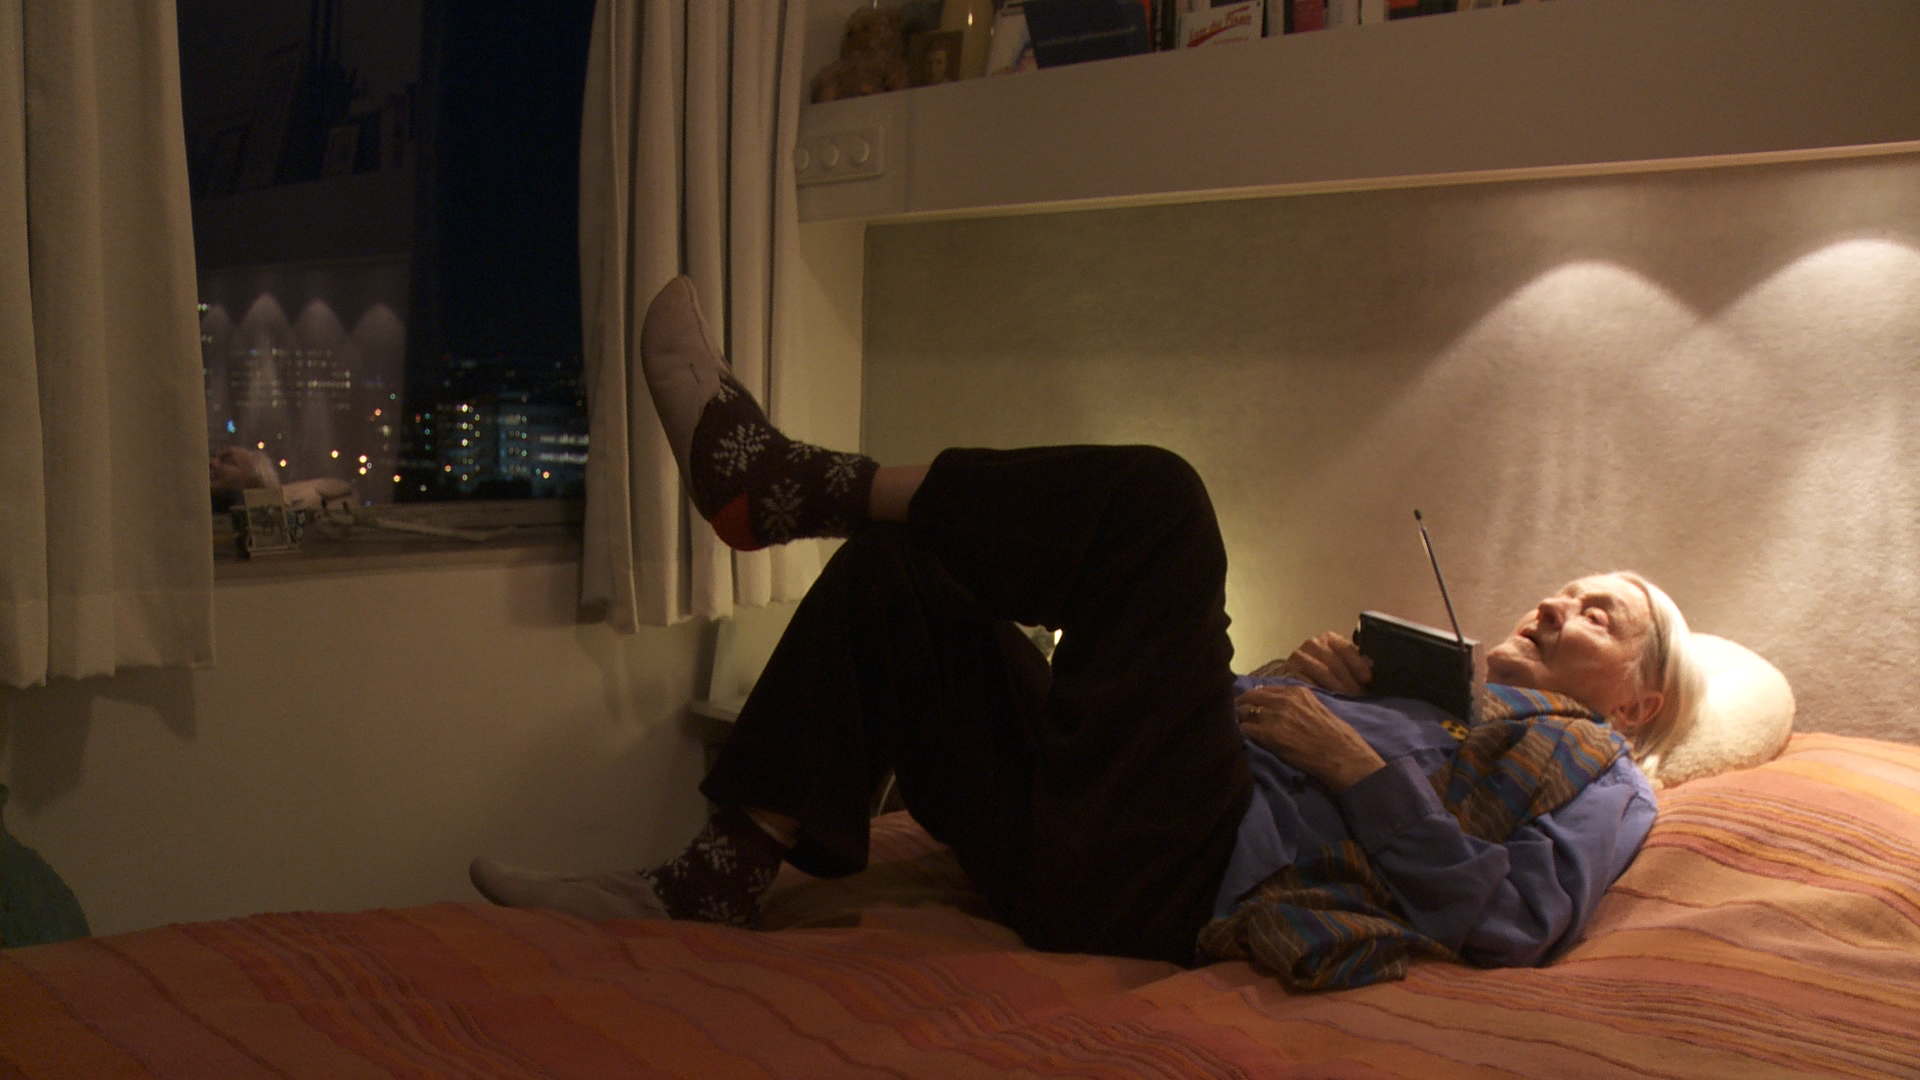 Still from the film Een klein beetje nog. Elisabeth is lying on her bed, one foot propped up on her other knee, listening to the radio.